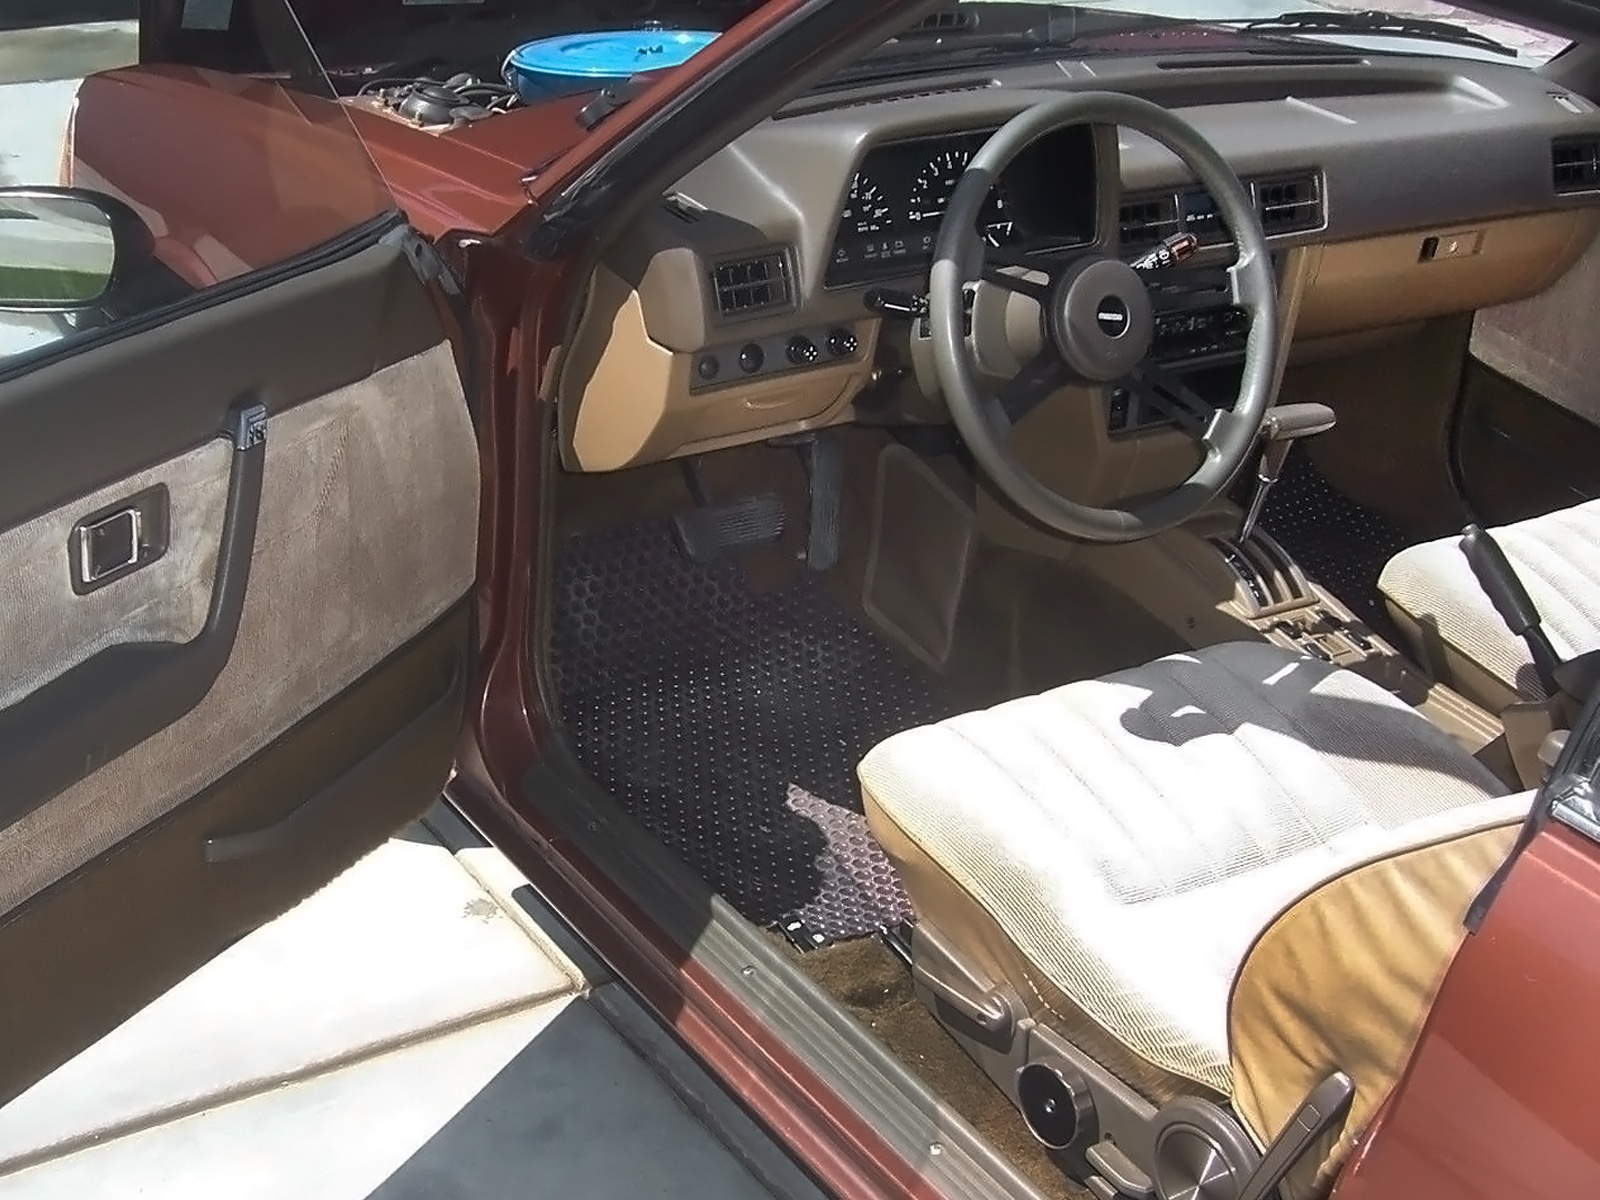 091716-barn-finds-1982-mazda-626-coupe-4